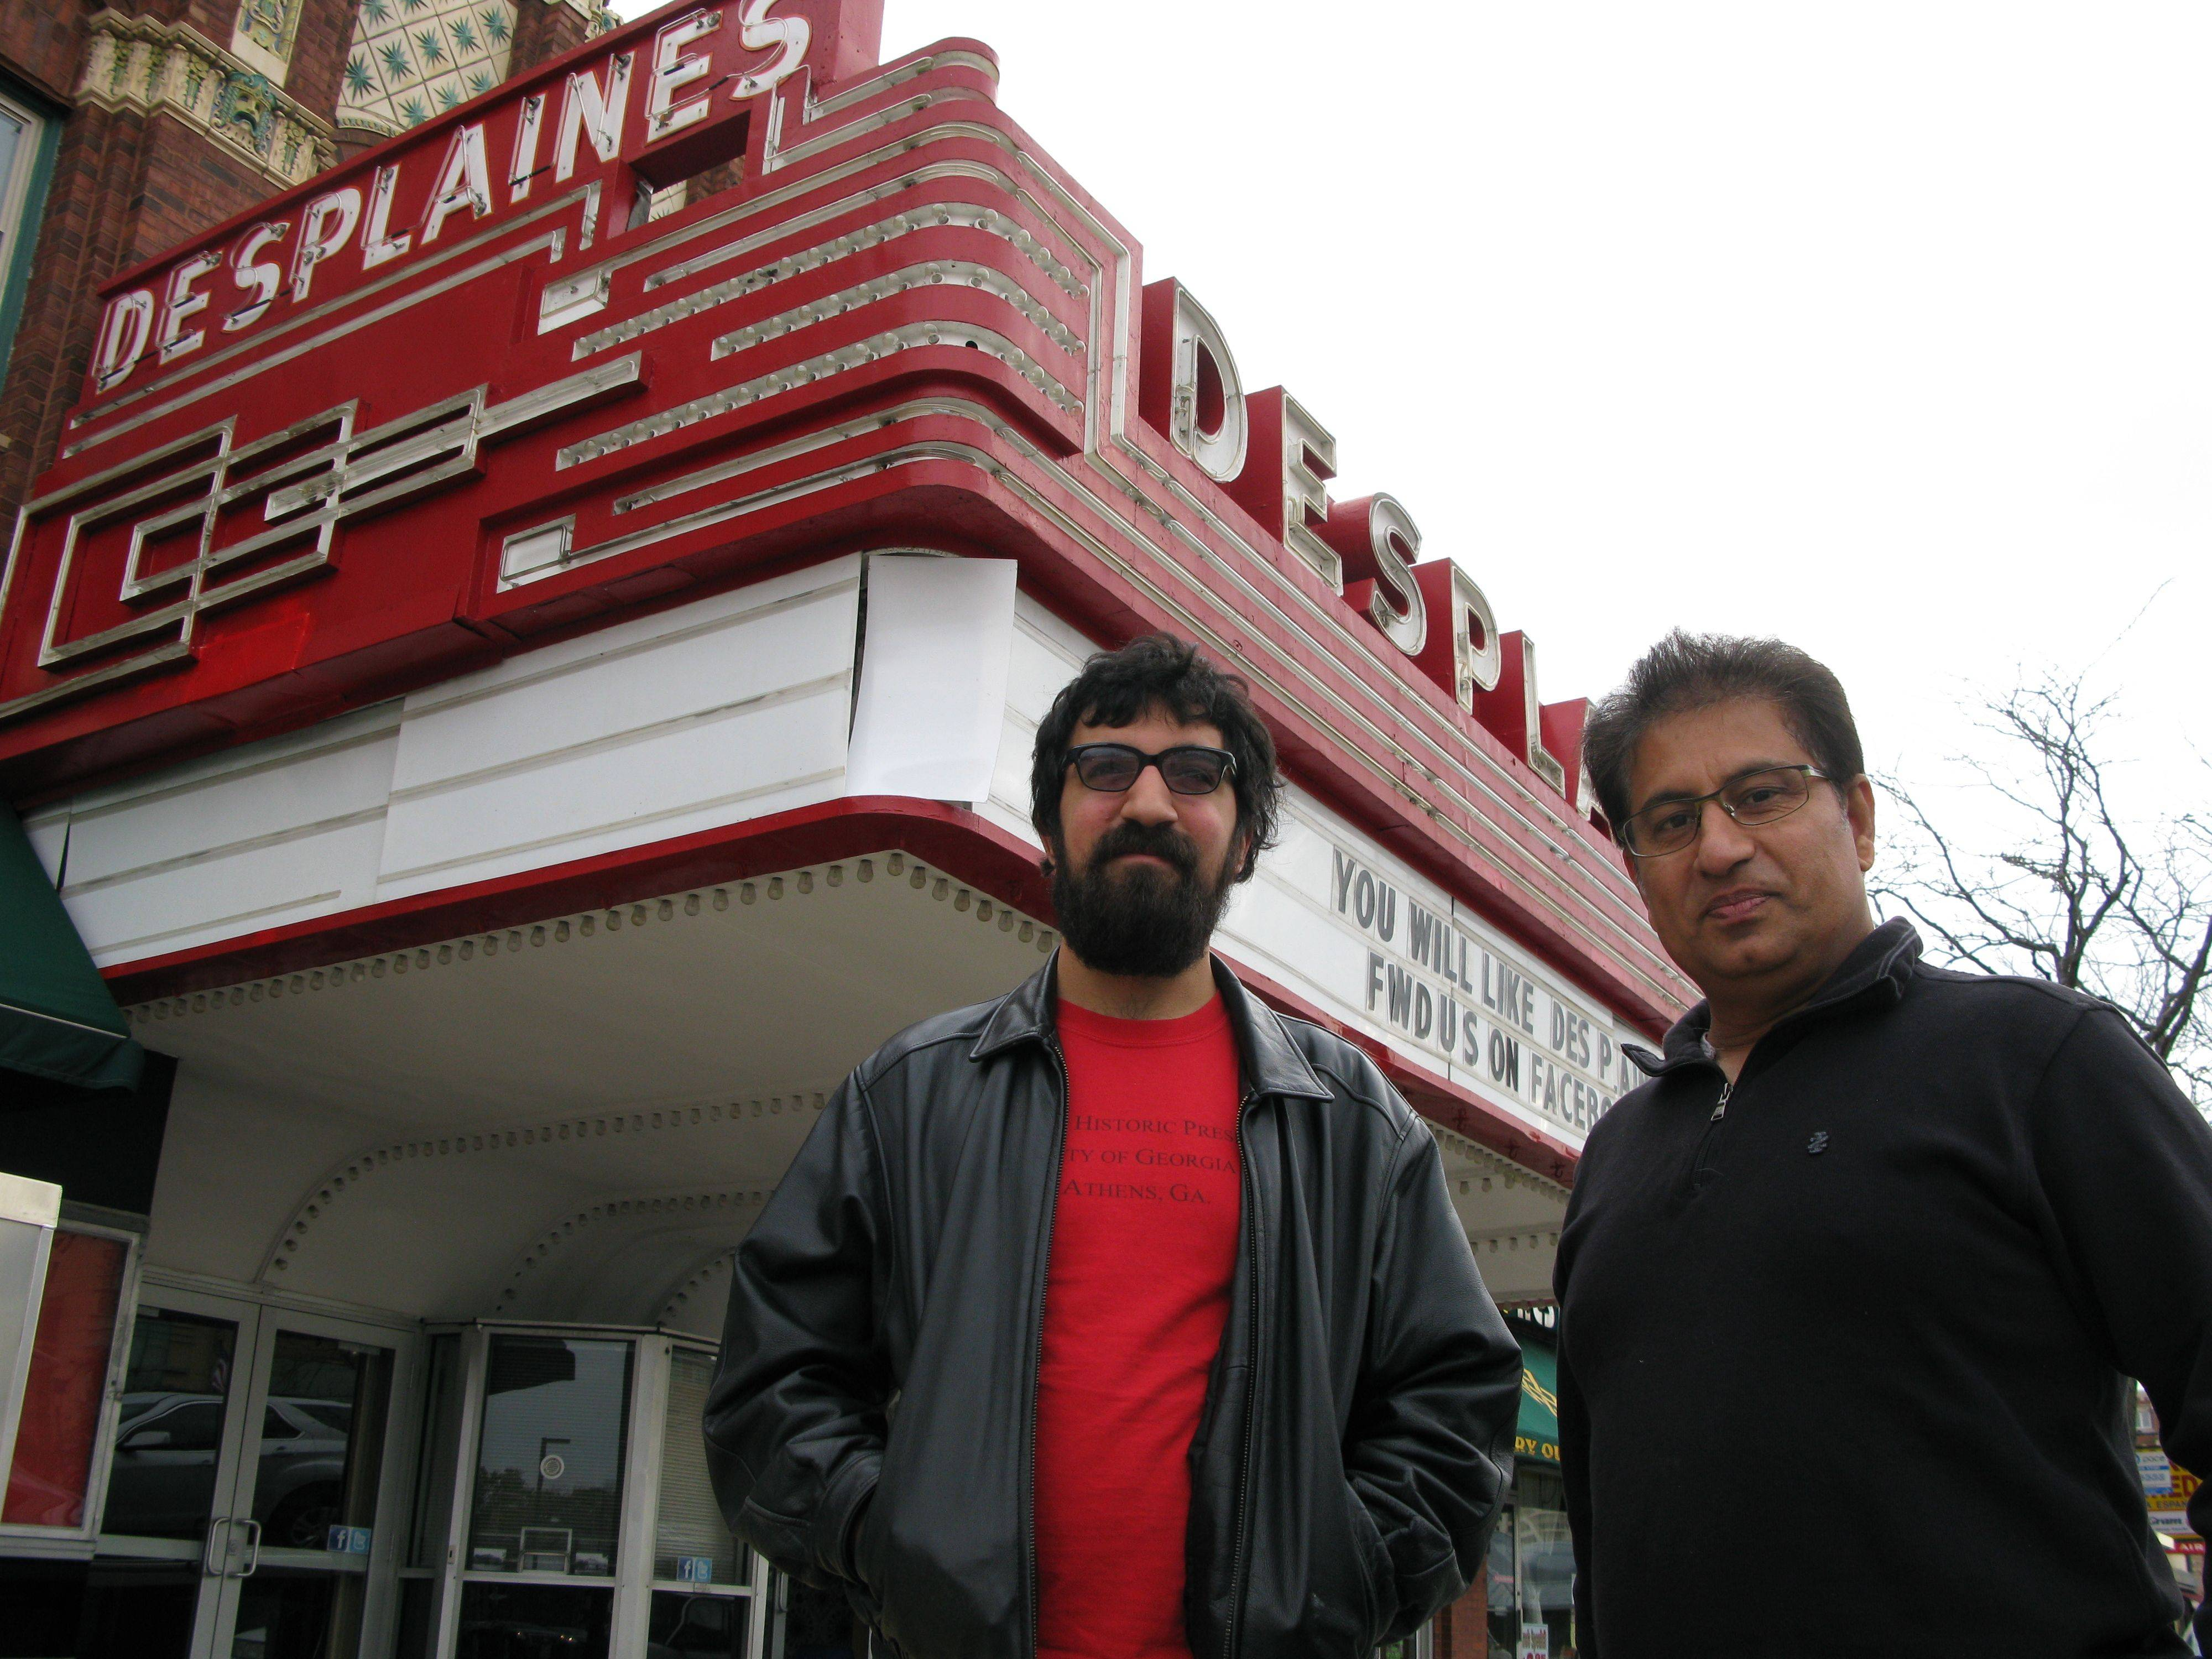 Des Plaines Theatre owner Dhitu Bhagwakar, right, and historical preservationist Brian Wolf stand in front of the newly restored and renovated theater, which reopens Nov. 11. Bhagwakar hopes the theater will take off with live performances, as well as Bollywood and Hollywood movie showings.